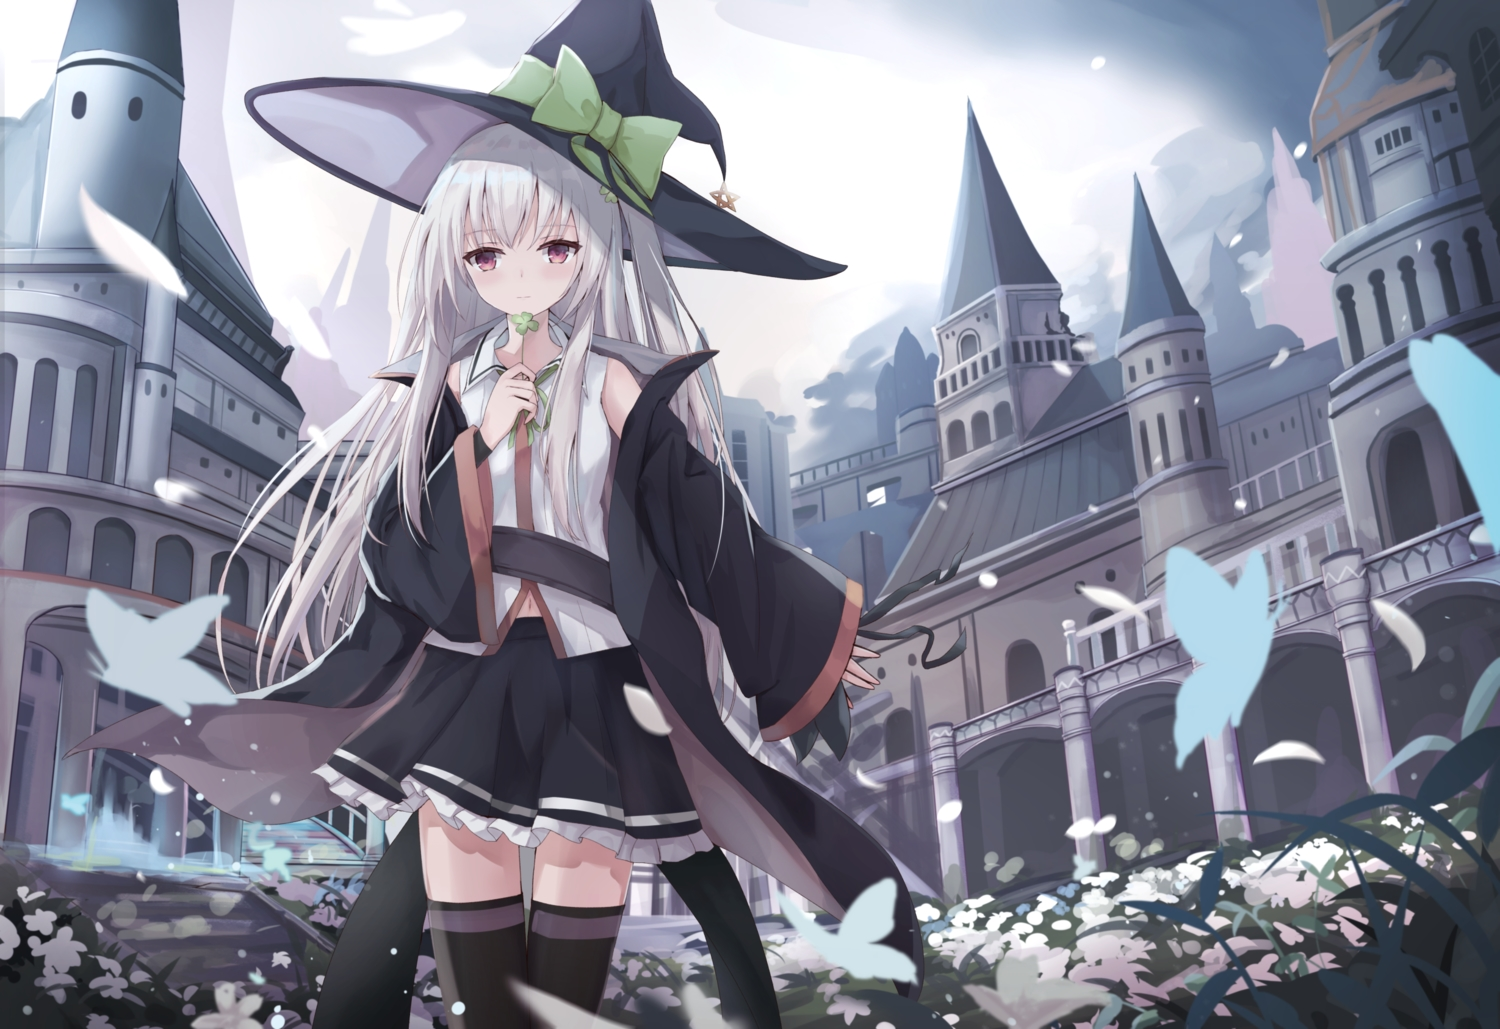 bow building butterfly flowers hat long_hair navel original red_eyes skirt sky stairs thighhighs touhourh white_hair witch_hat zettai_ryouiki